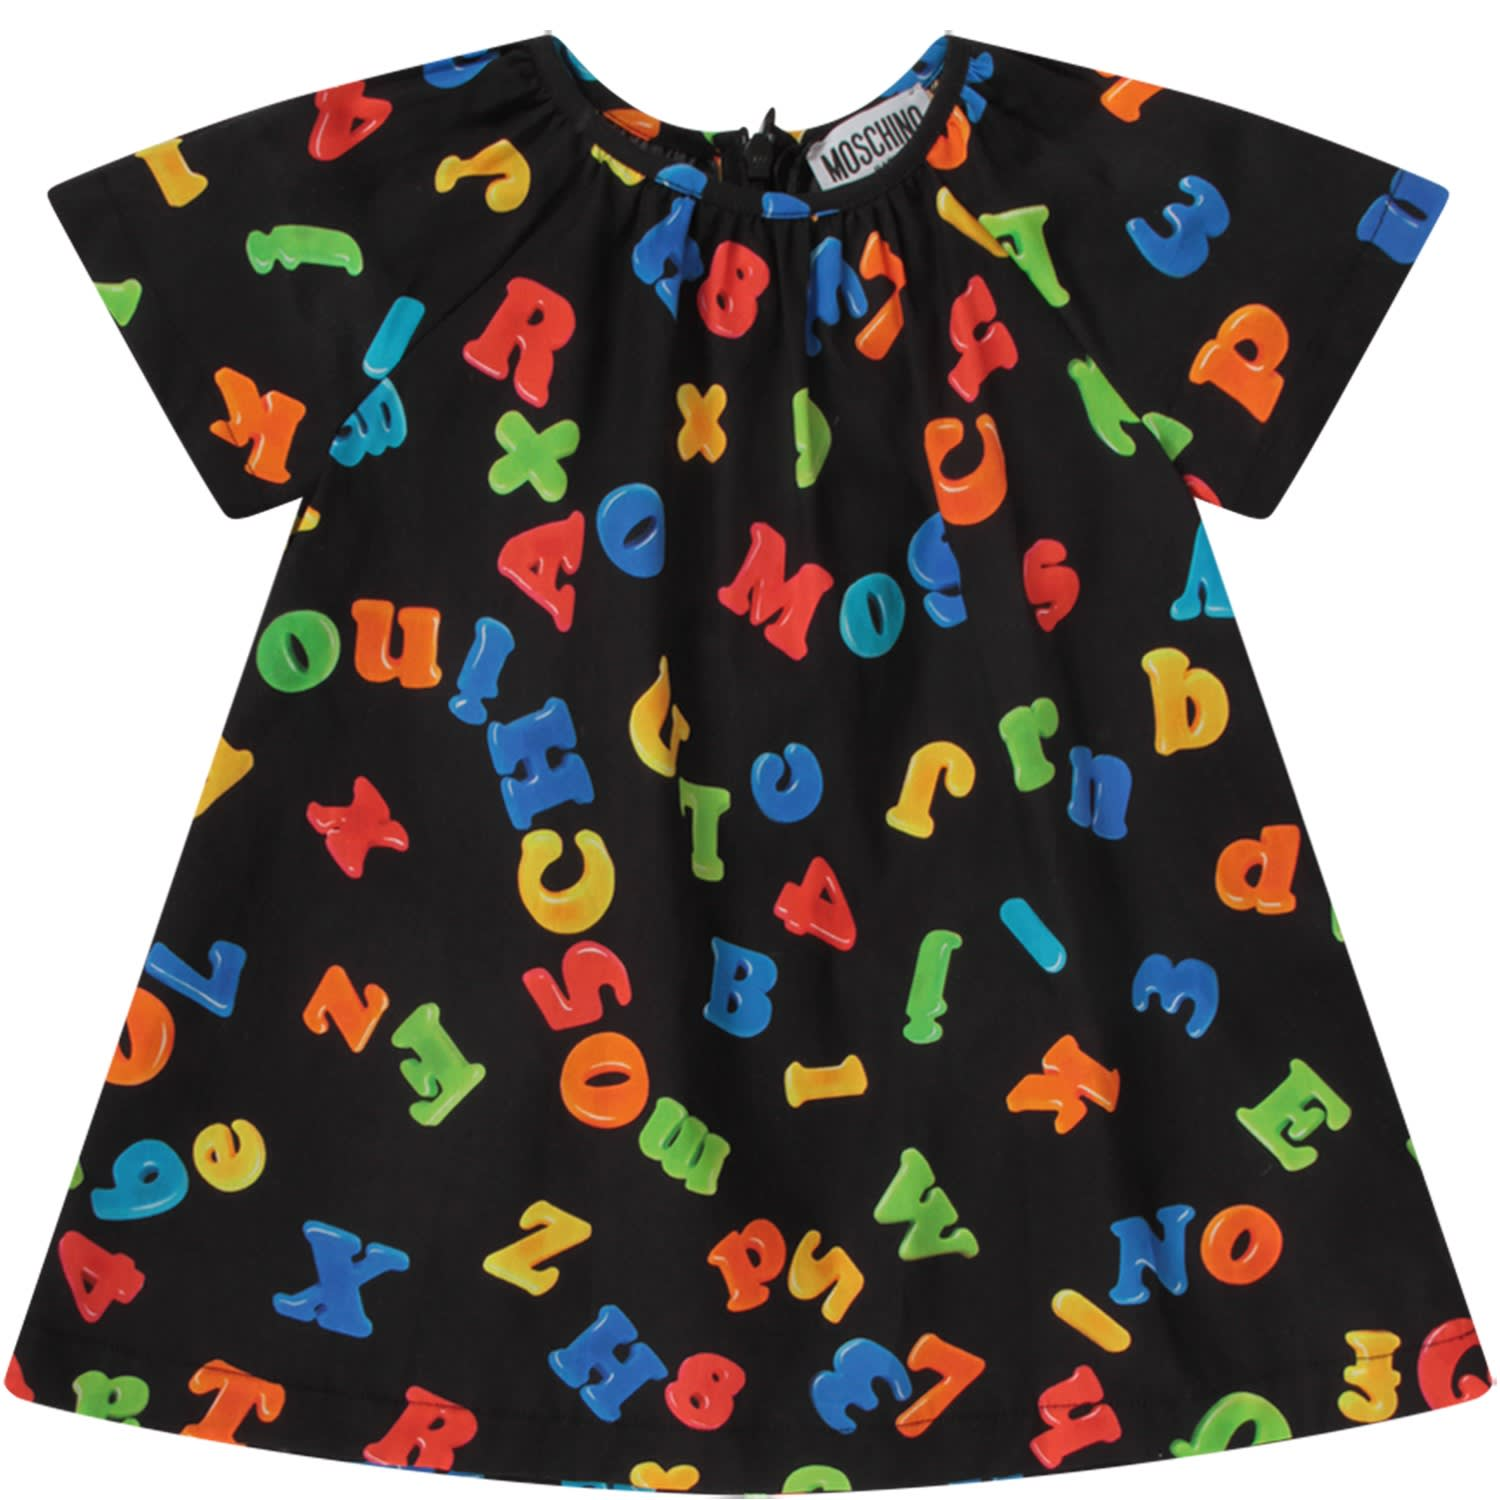 Buy Moschino Black Babygirl Dress With Colorful Letters And Numbers online, shop Moschino with free shipping